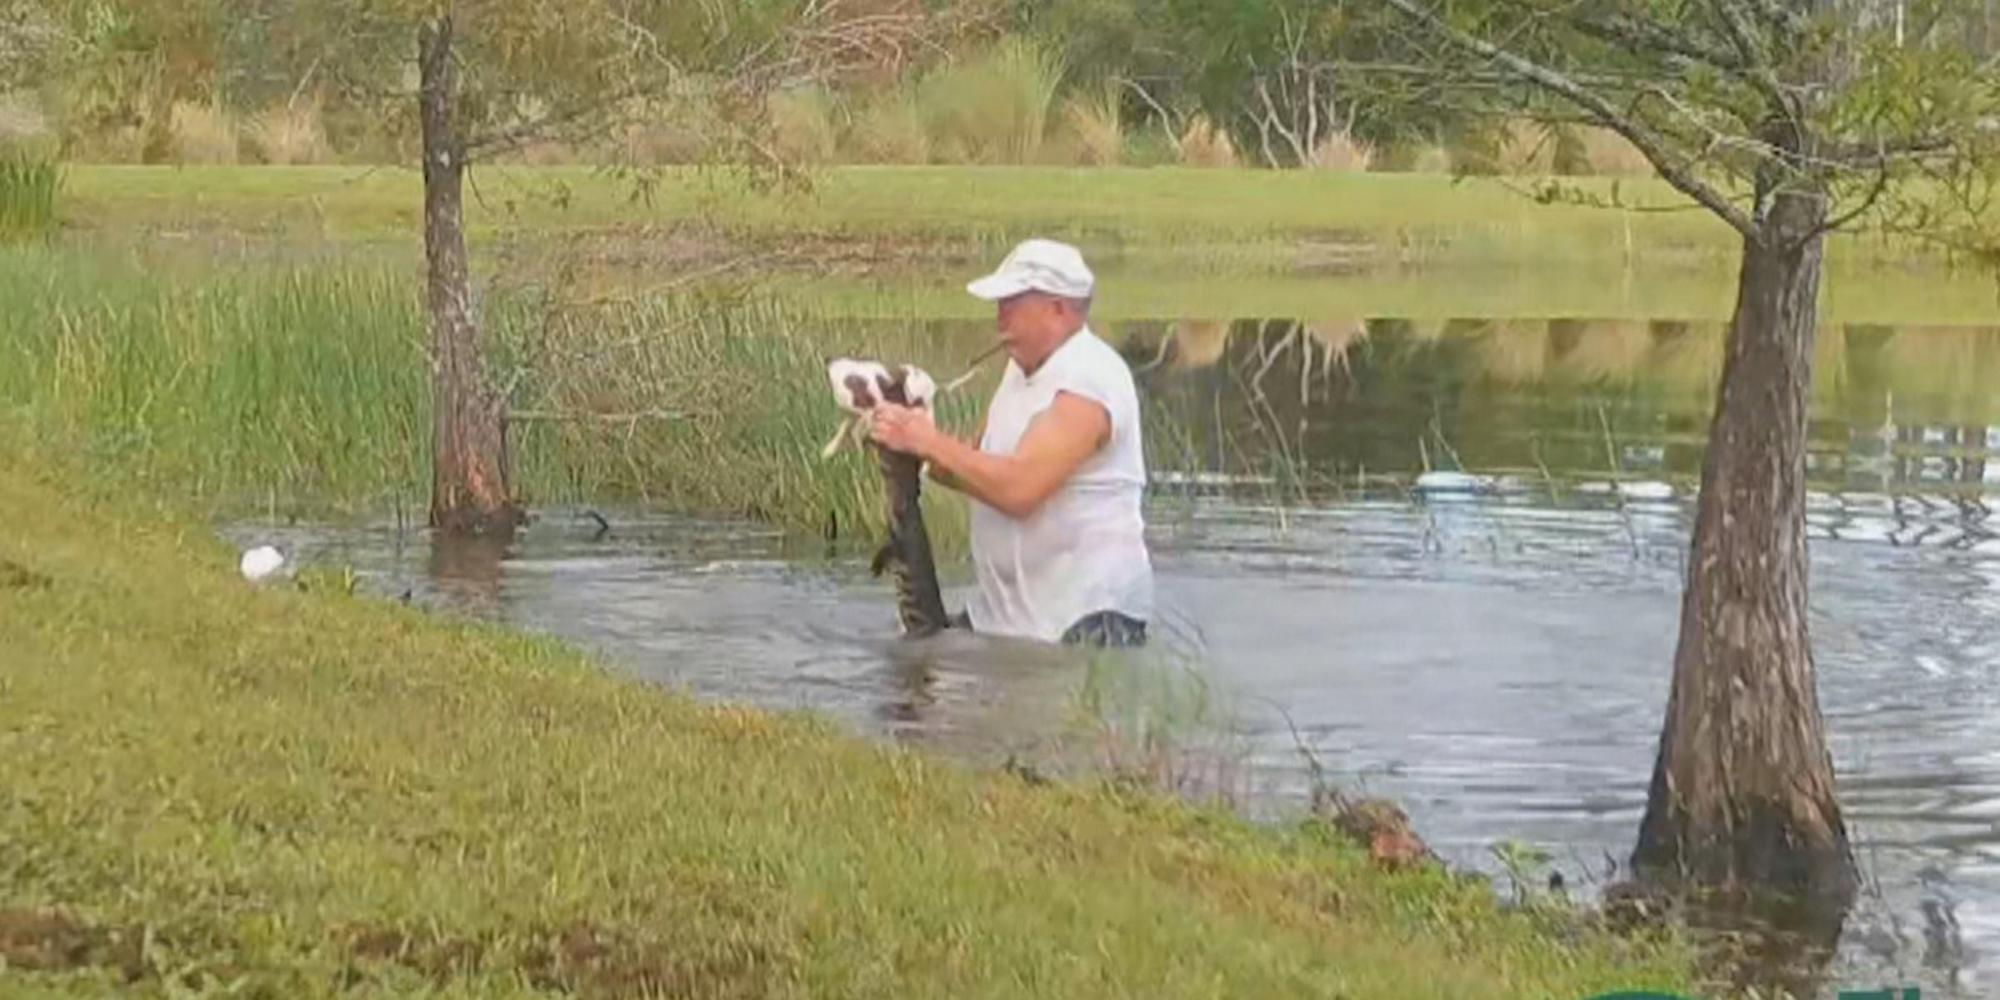 Florida man saves his puppy dragged into pond by alligator thumbnail